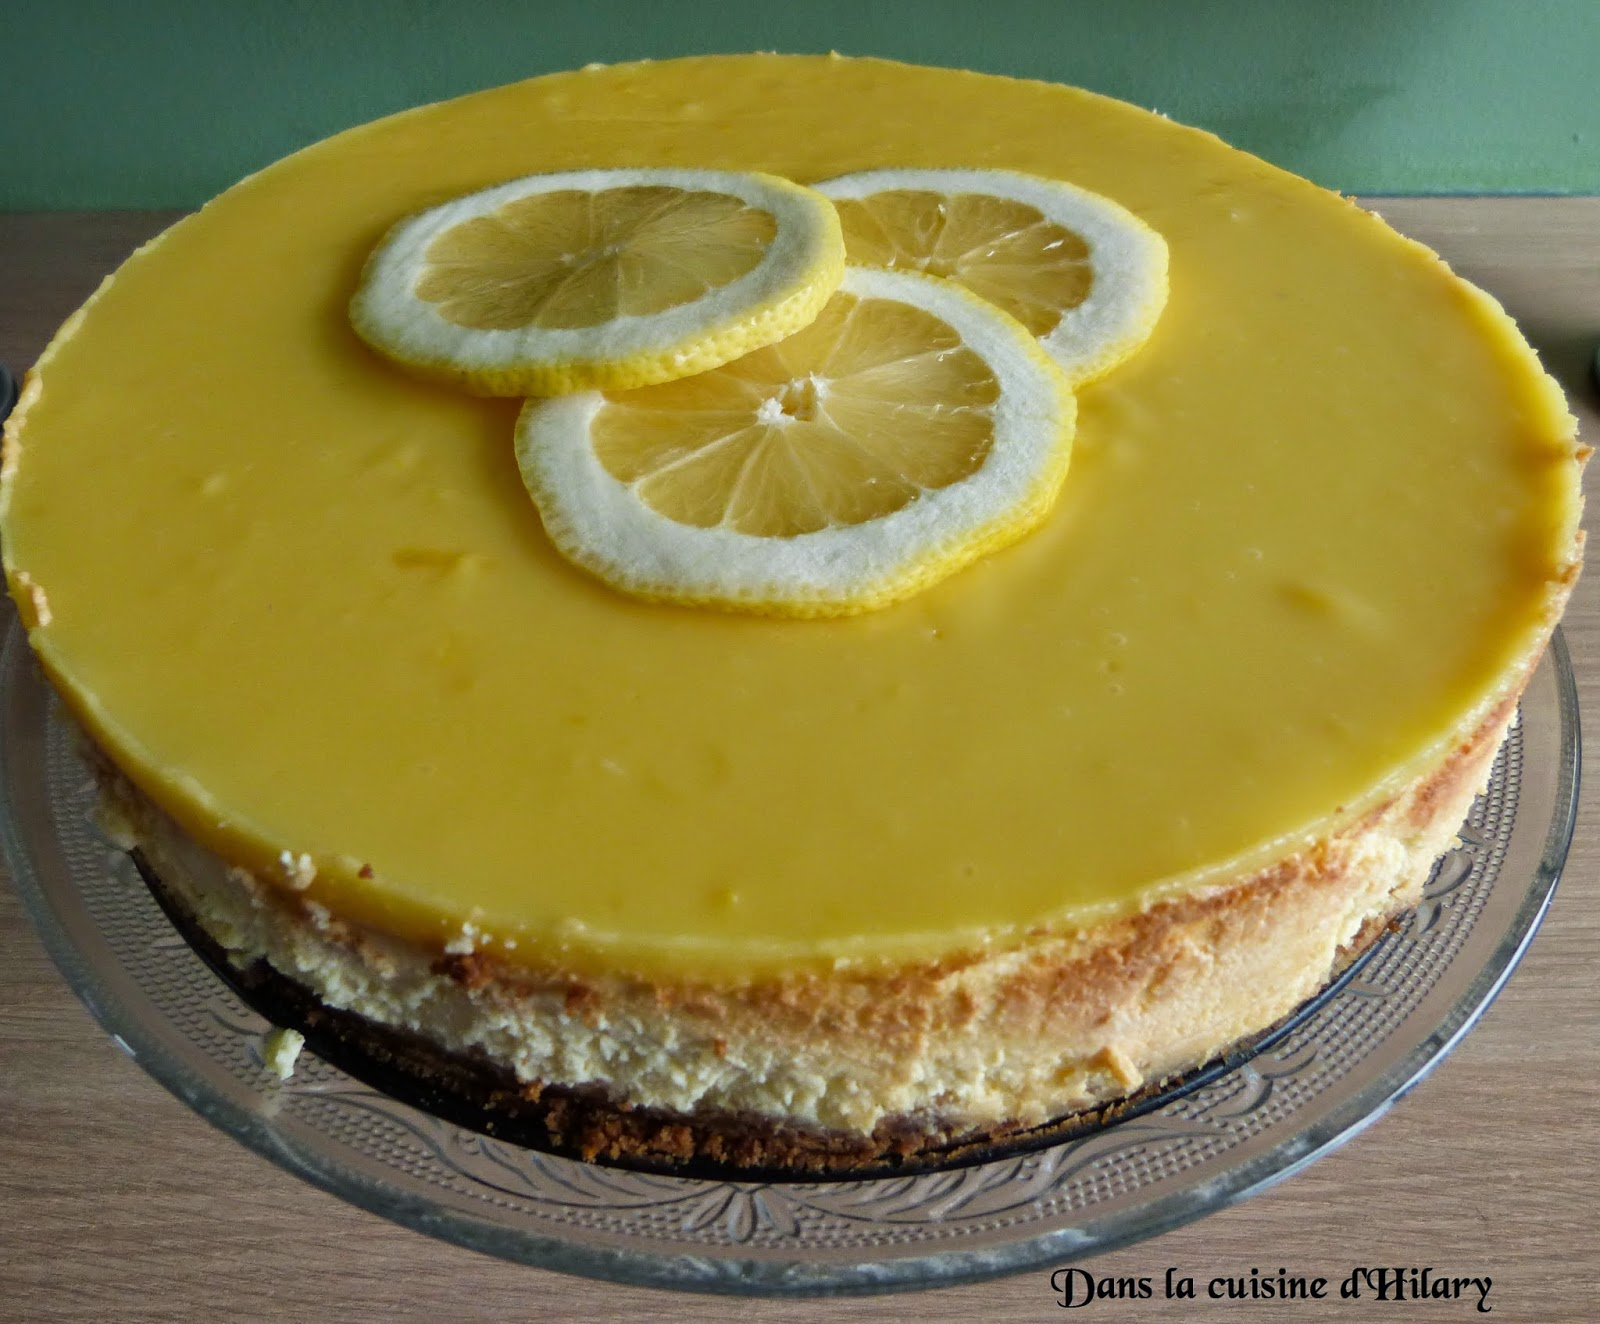 Cheesecake New-Yorkais au citron et son miroir au lemon curd